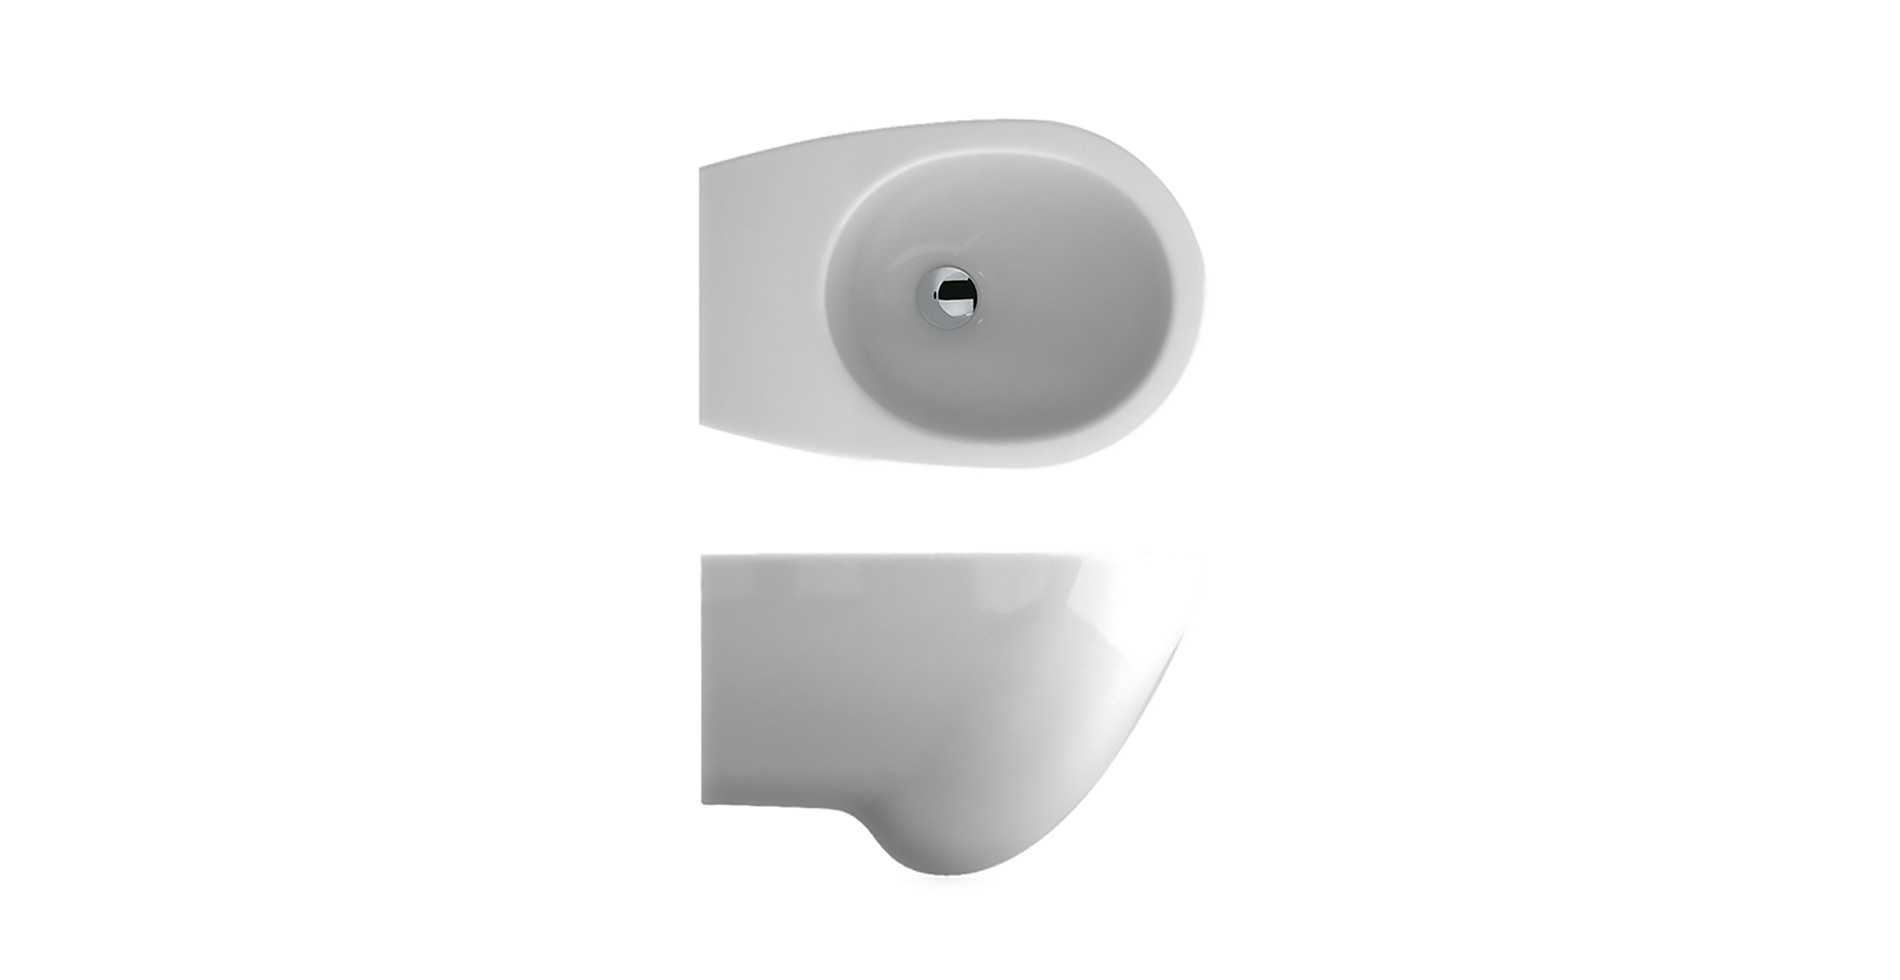 Bowl ceramic sanitary ware toilet | Bathroom deco inspired in nature egg shape | Design by Antonio Pascale for Ceramica Globo